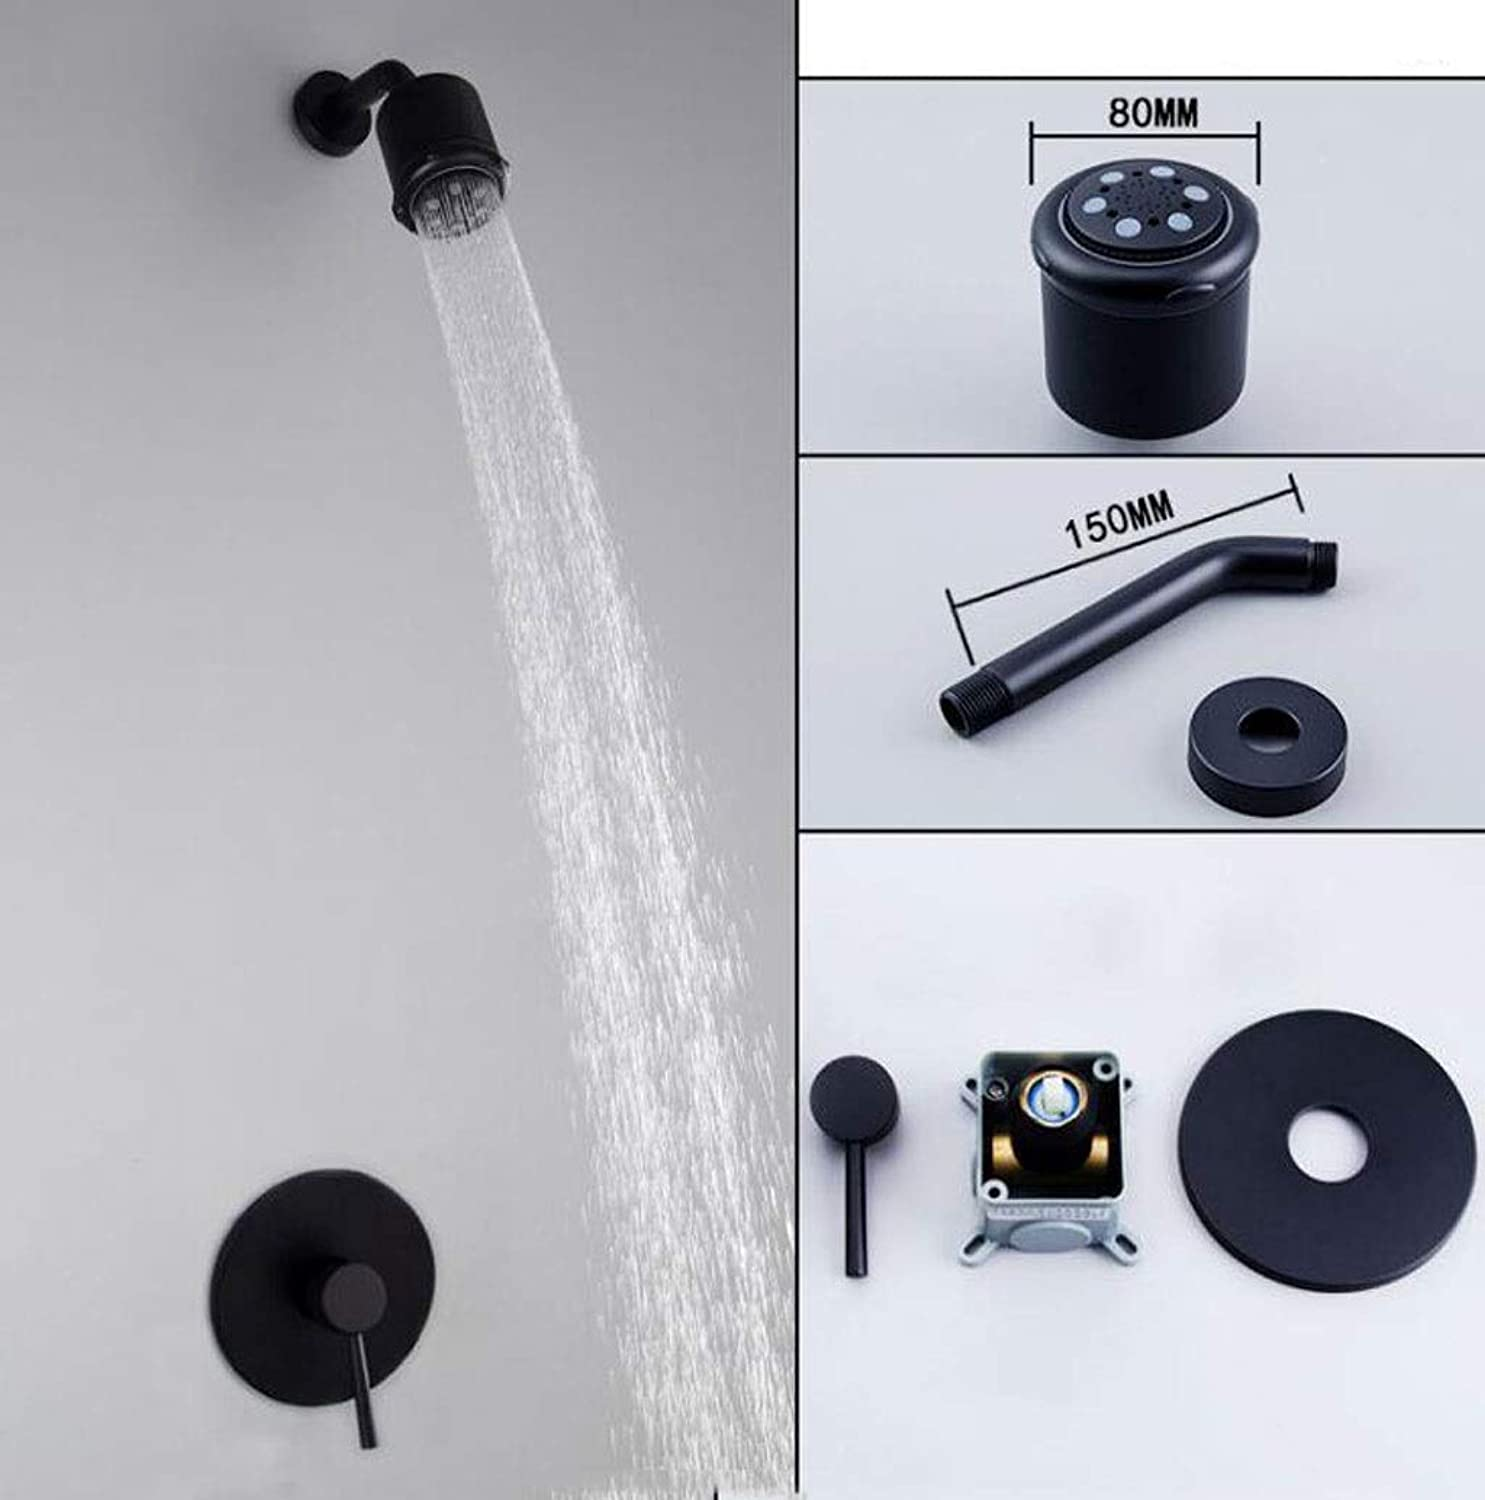 CHENGXINGF Bathroom shower accessories Concealed shower set Hotel in-wall shower Black sprinkler